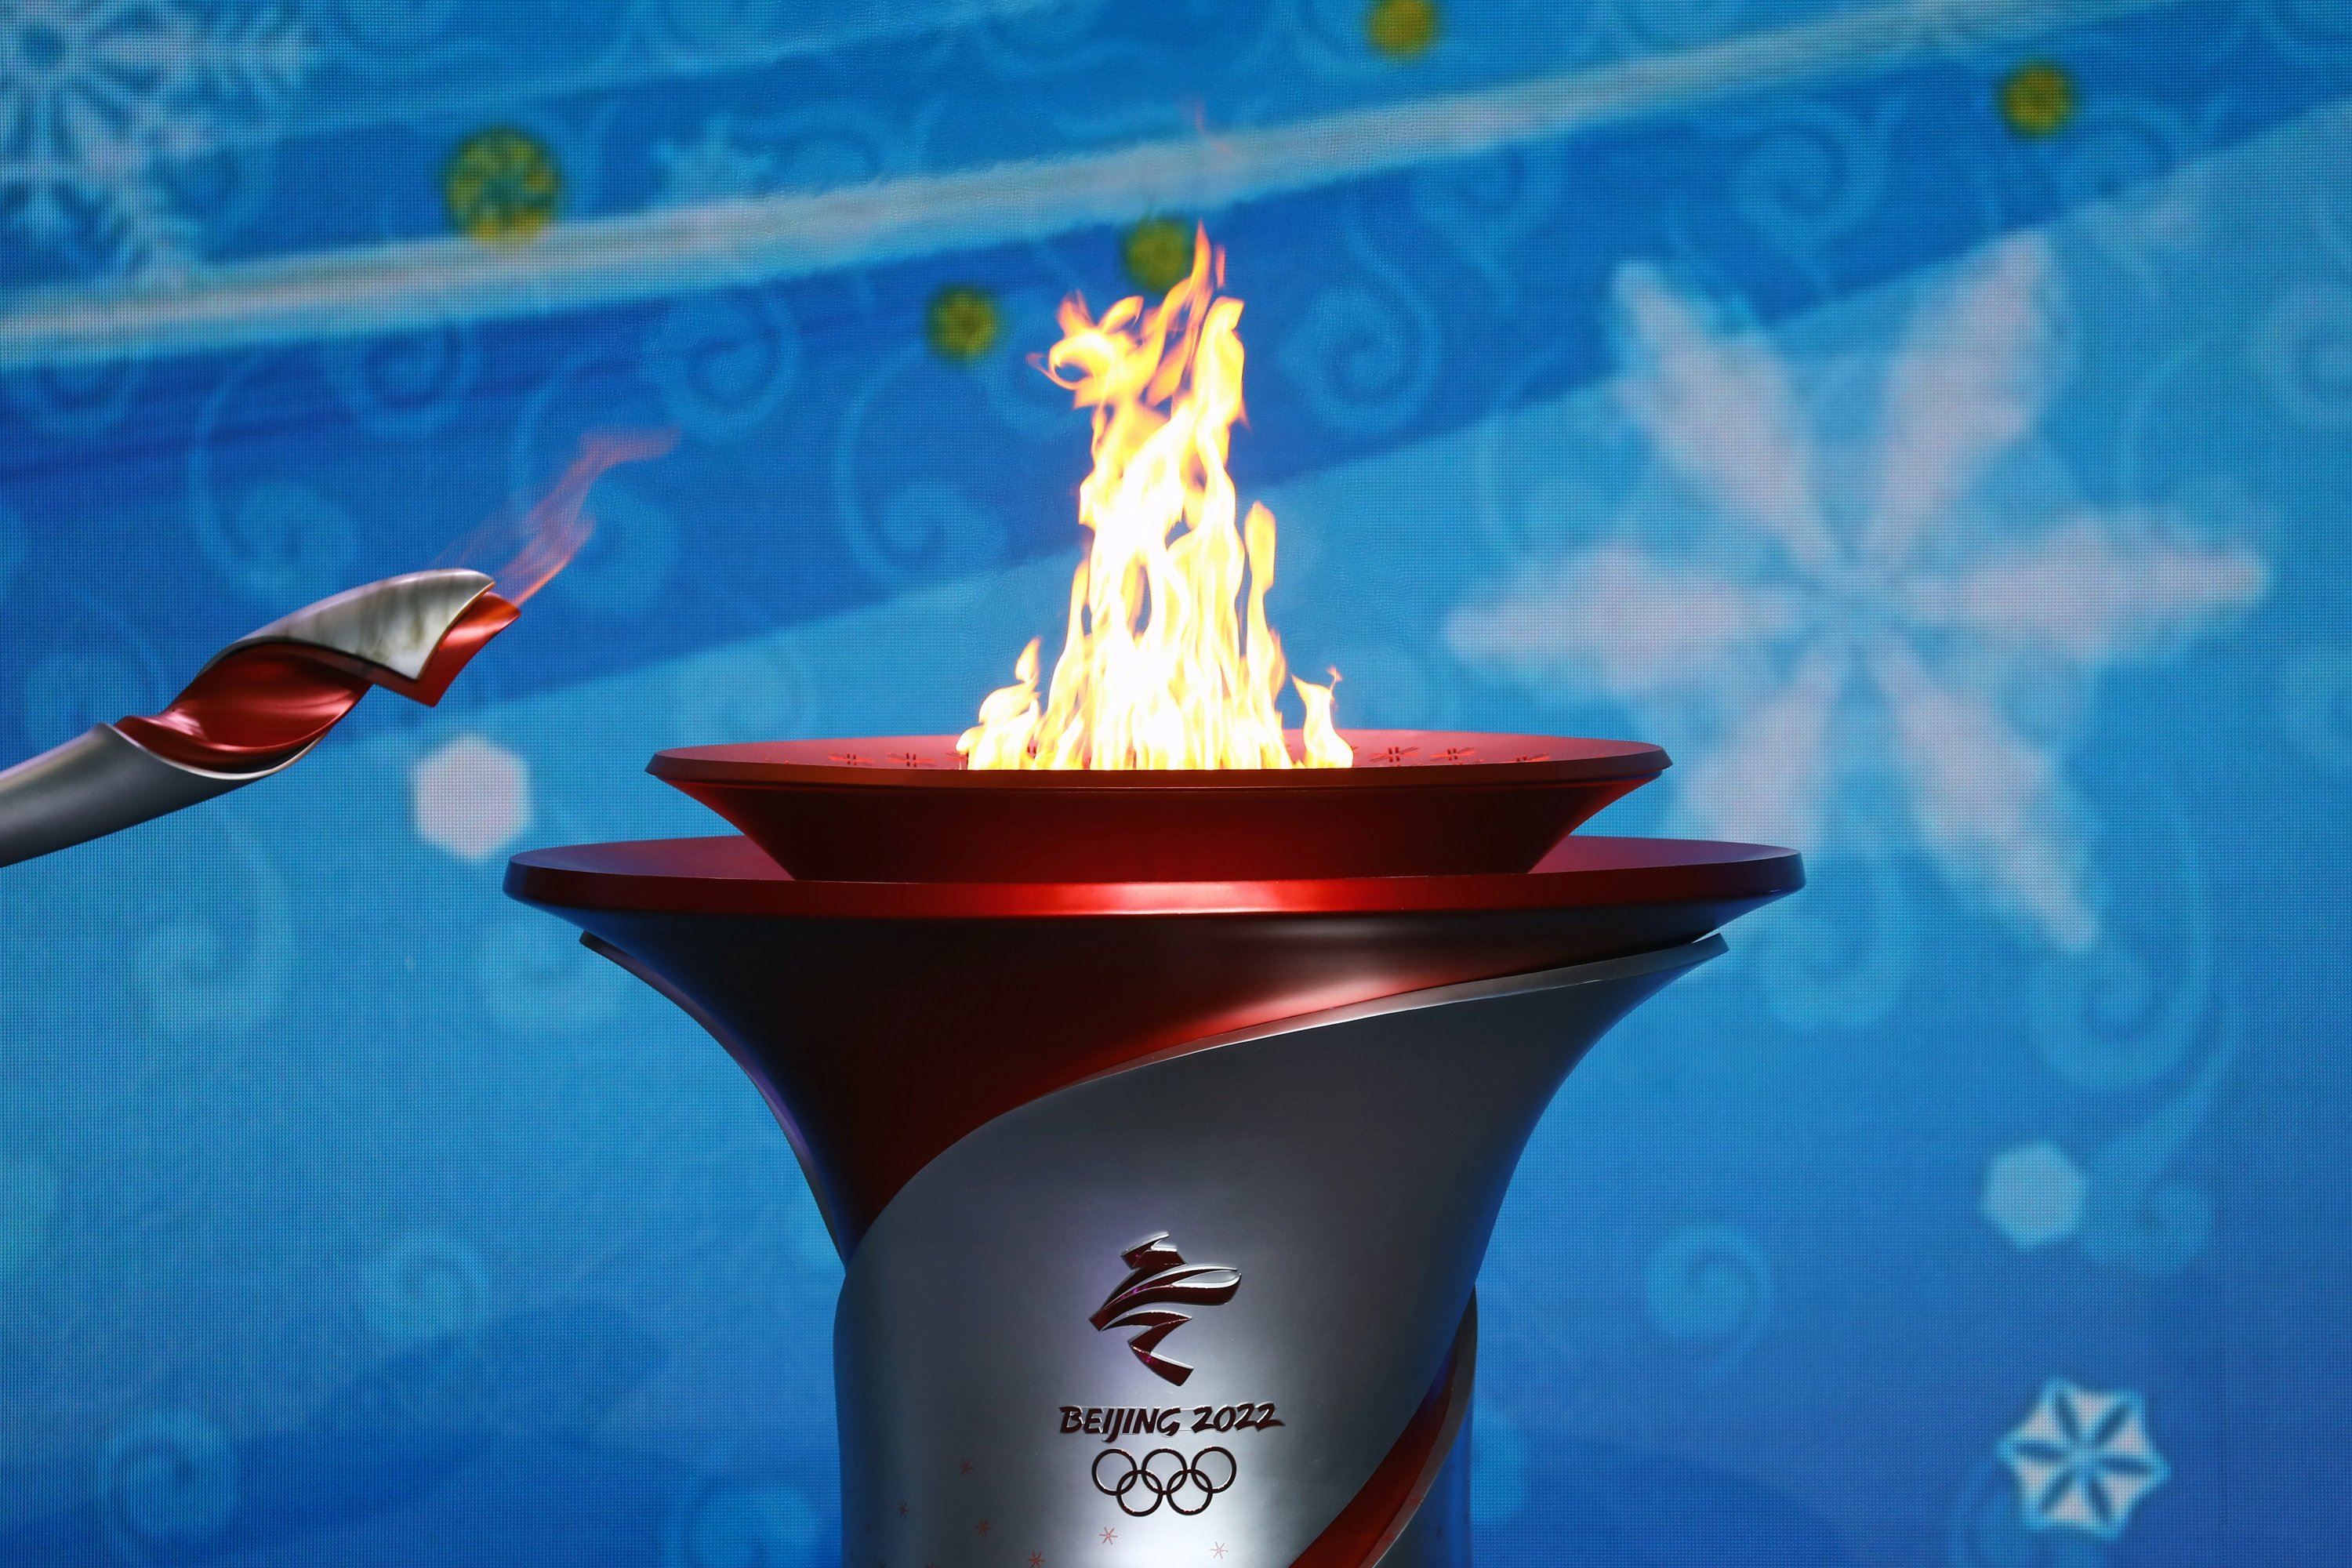 Beijing 2022 Winter Games: Olympic flame arrives in China